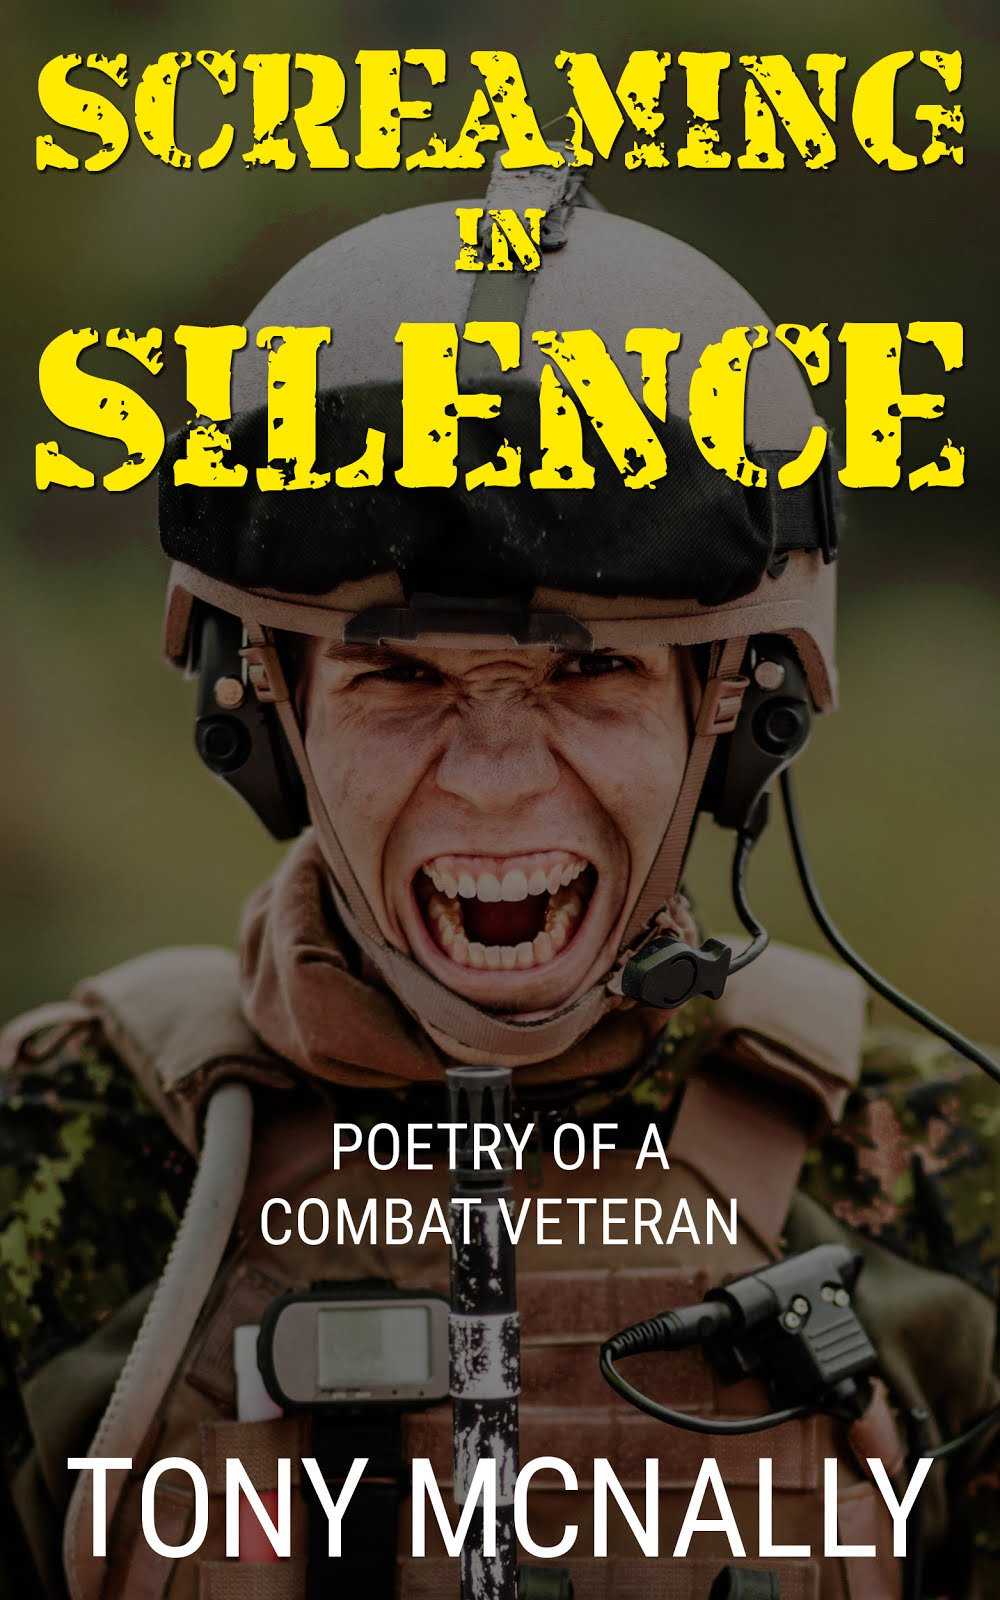 My book of PTSD poetry